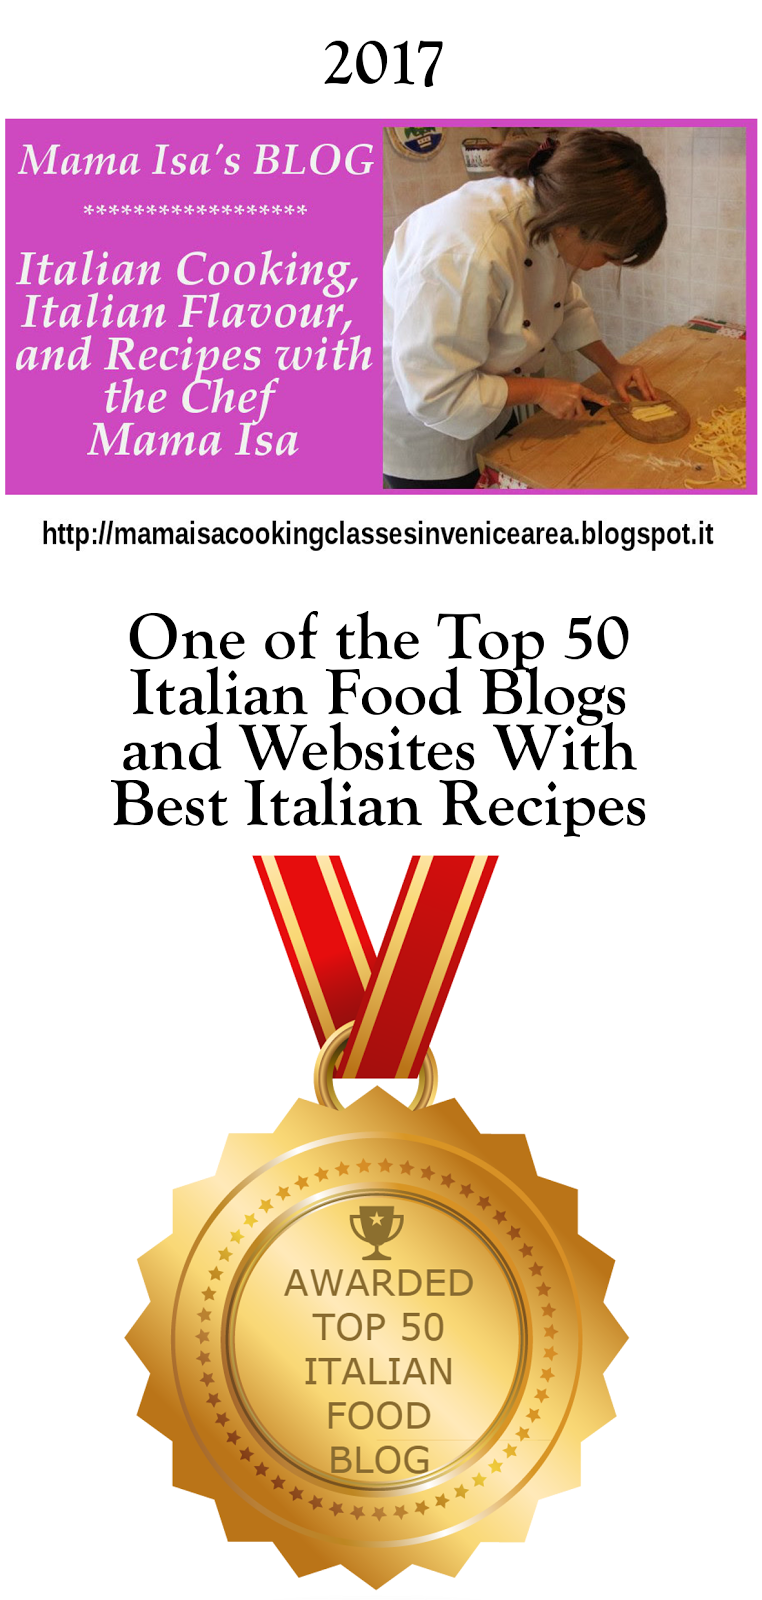 2017 Mama Isa's Blog - One of the top 50 Italian Food Blogs